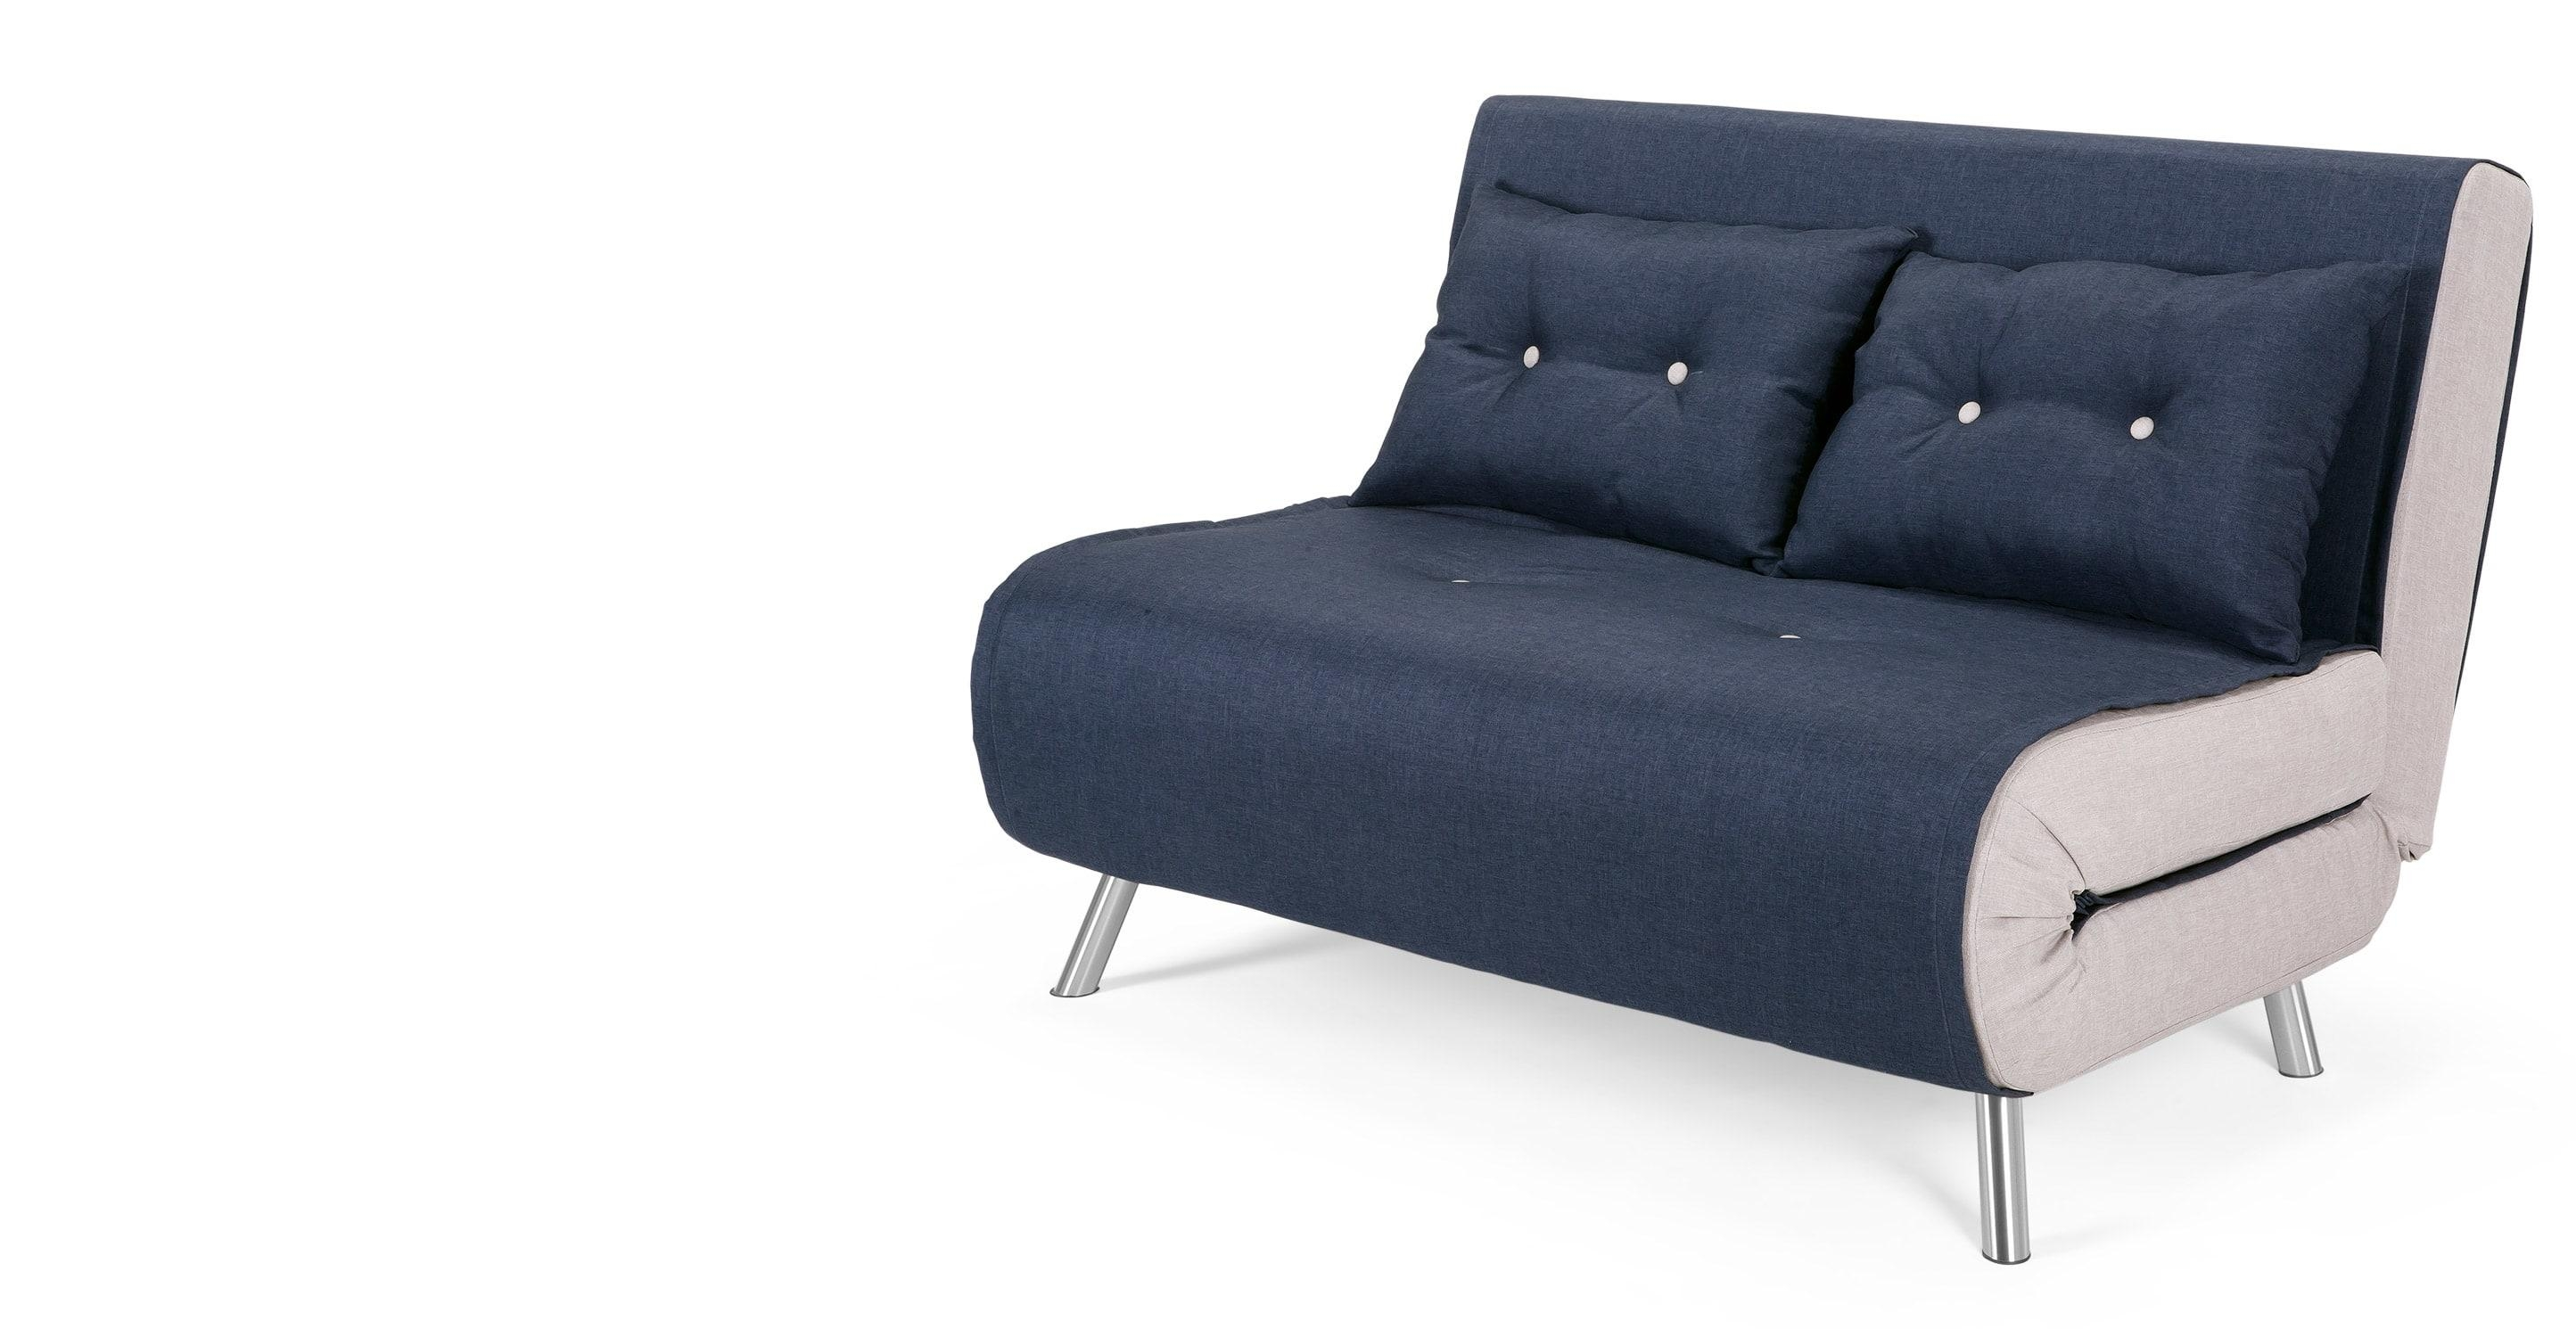 Haru Small Sofa Bed In Quartz Blue | Made With Mini Sofa Beds (View 4 of 20)